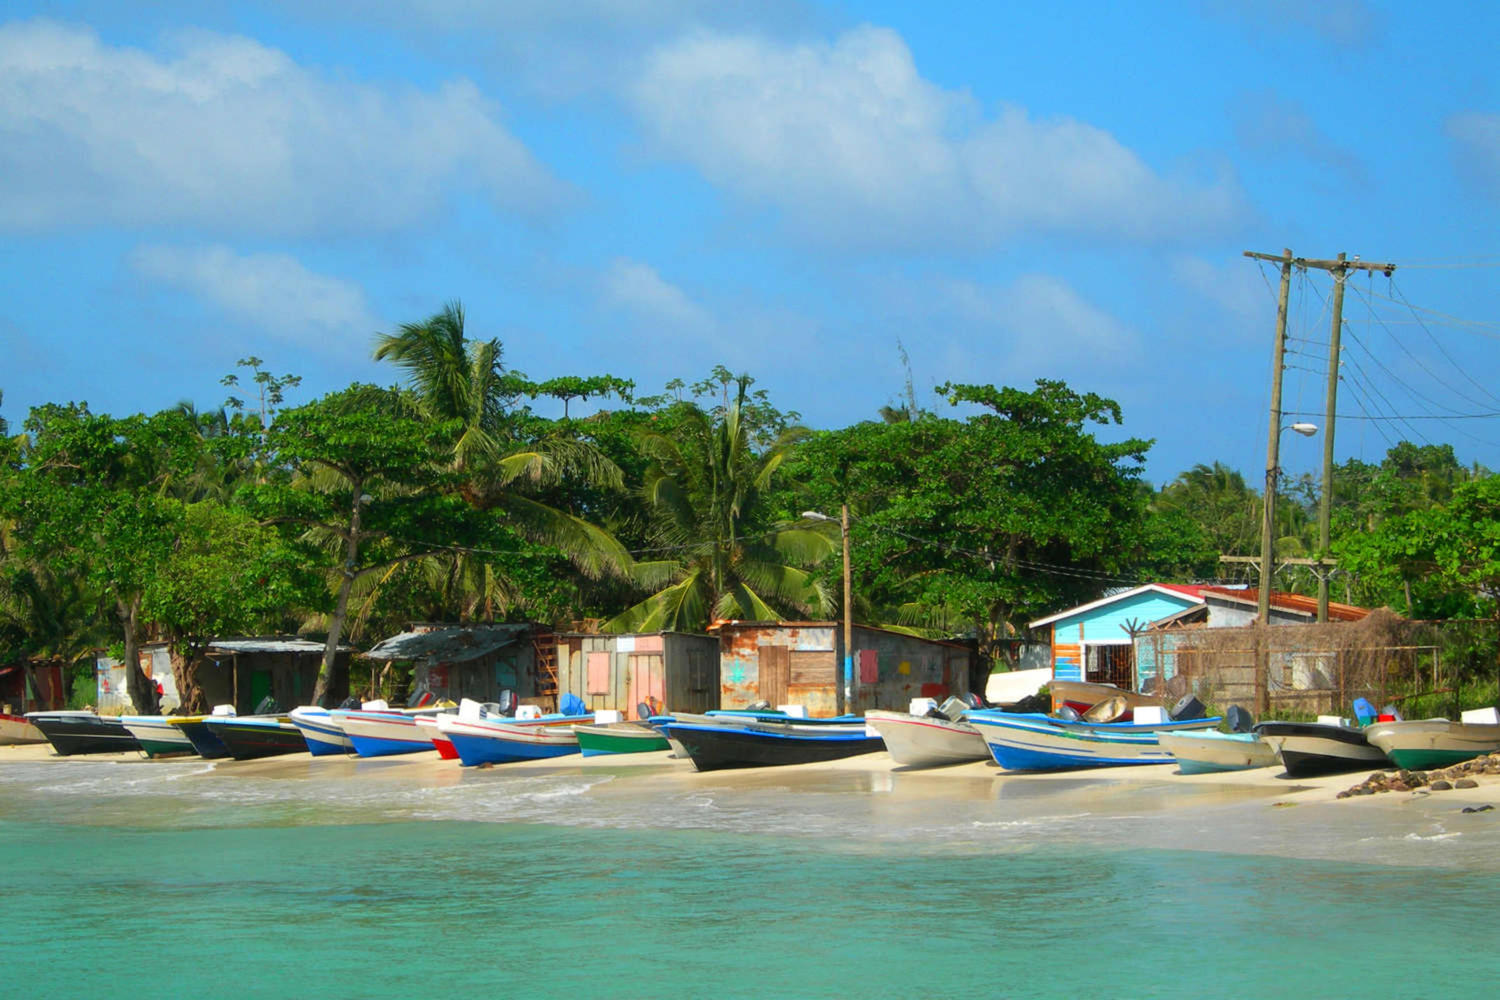 Native panga fishing boats on beach with native zinc houses in Nicaragua's Corn island